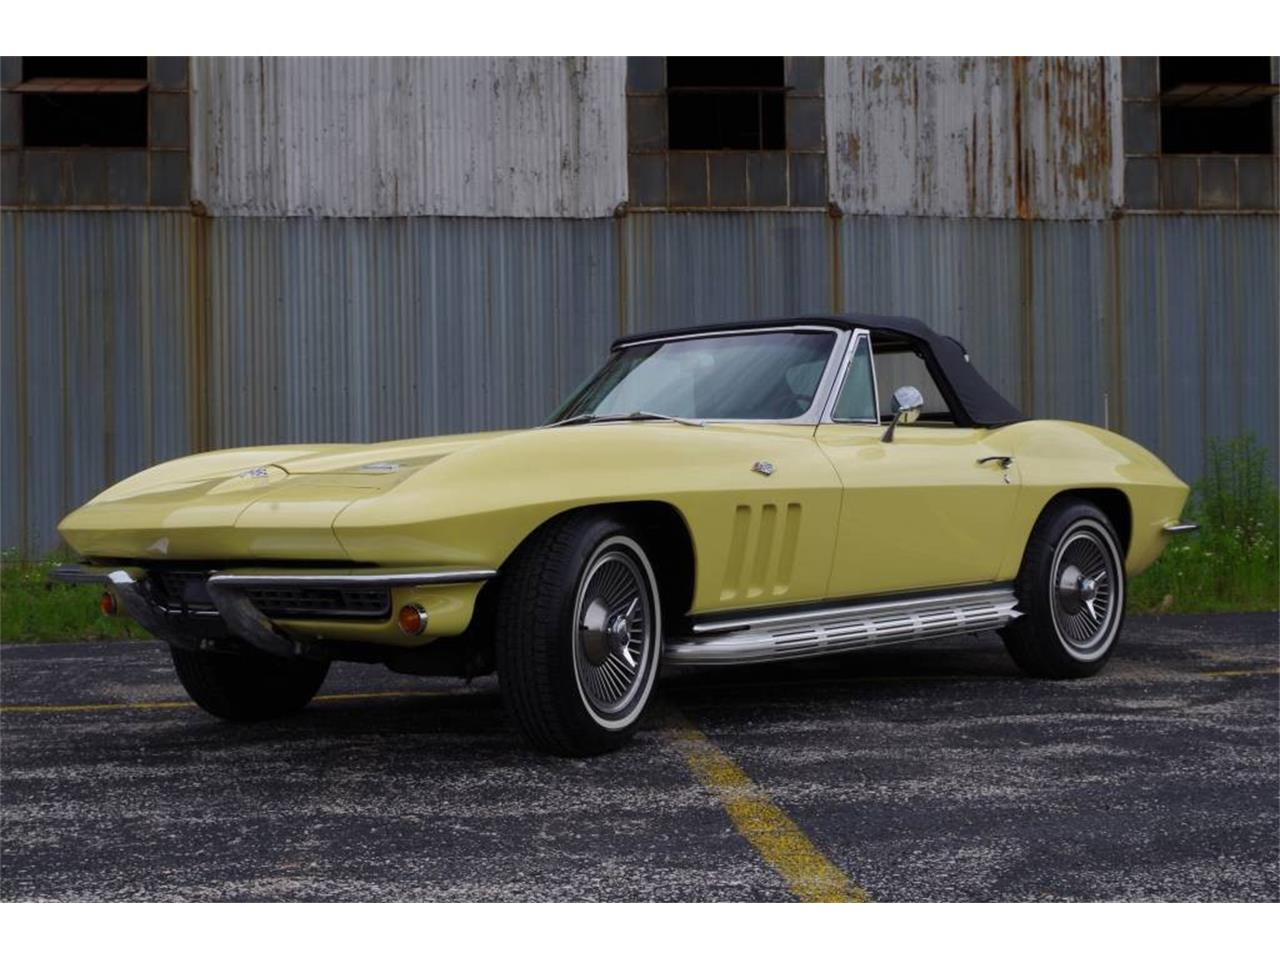 Large Picture of Classic '66 Chevrolet Corvette located in Missouri Offered by Vintage Vettes, LLC - MO1Z